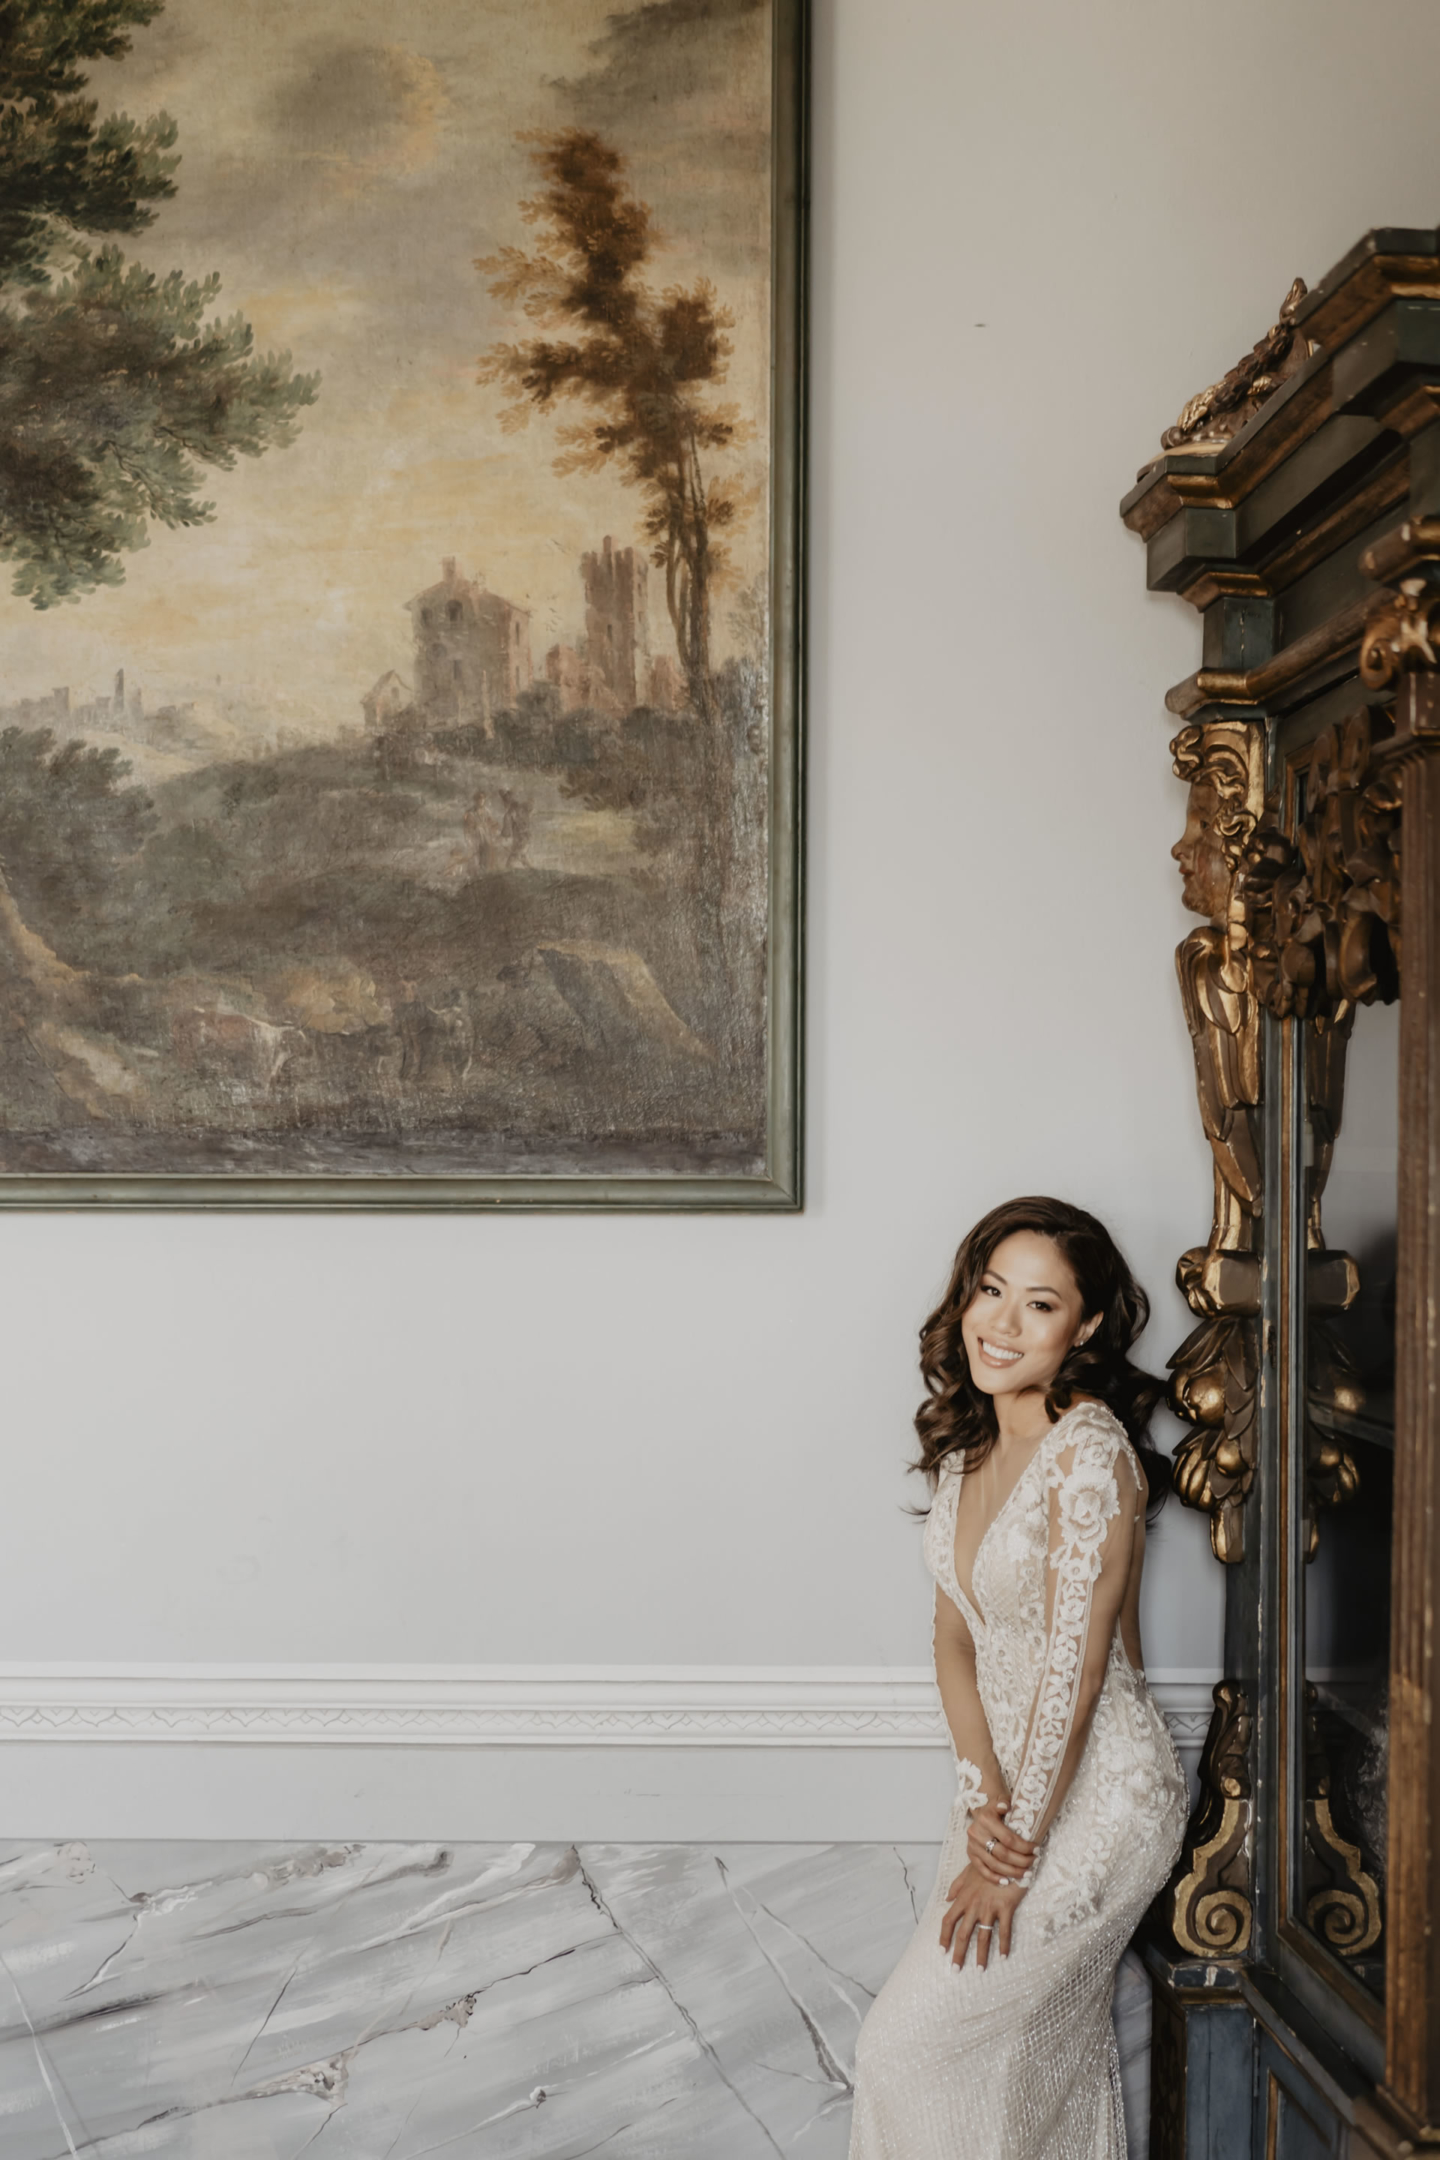 - 40 :: From Los angeles to Florence: a glamour asiatic wedding :: Luxury wedding photography - 39 ::  - 40